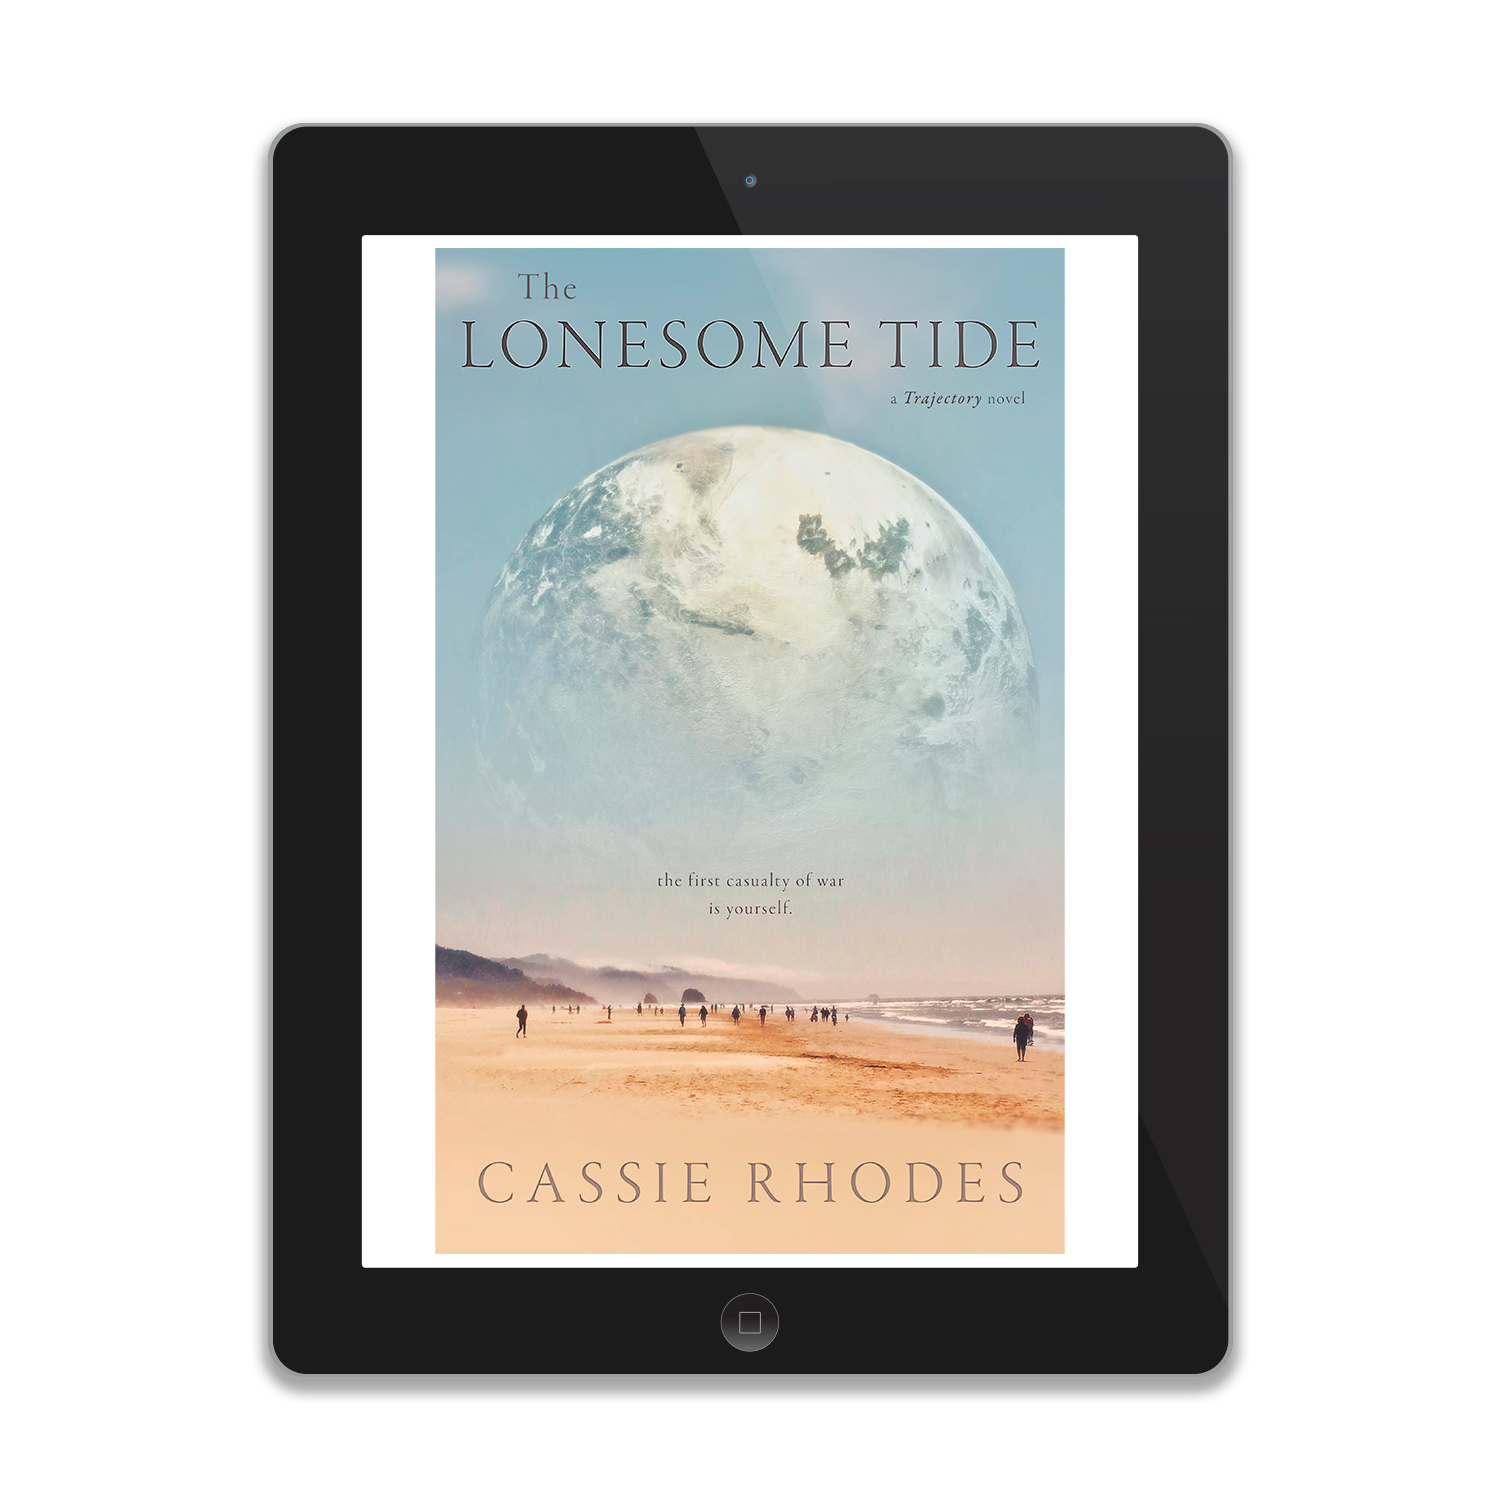 'The Lonesome Tide' is a reflective scifi novel, by author Cassie Rhodes. The book cover was designed by Mark Thomas, of coverness.com. To find out more about my book design services, please visit www.coverness.com.